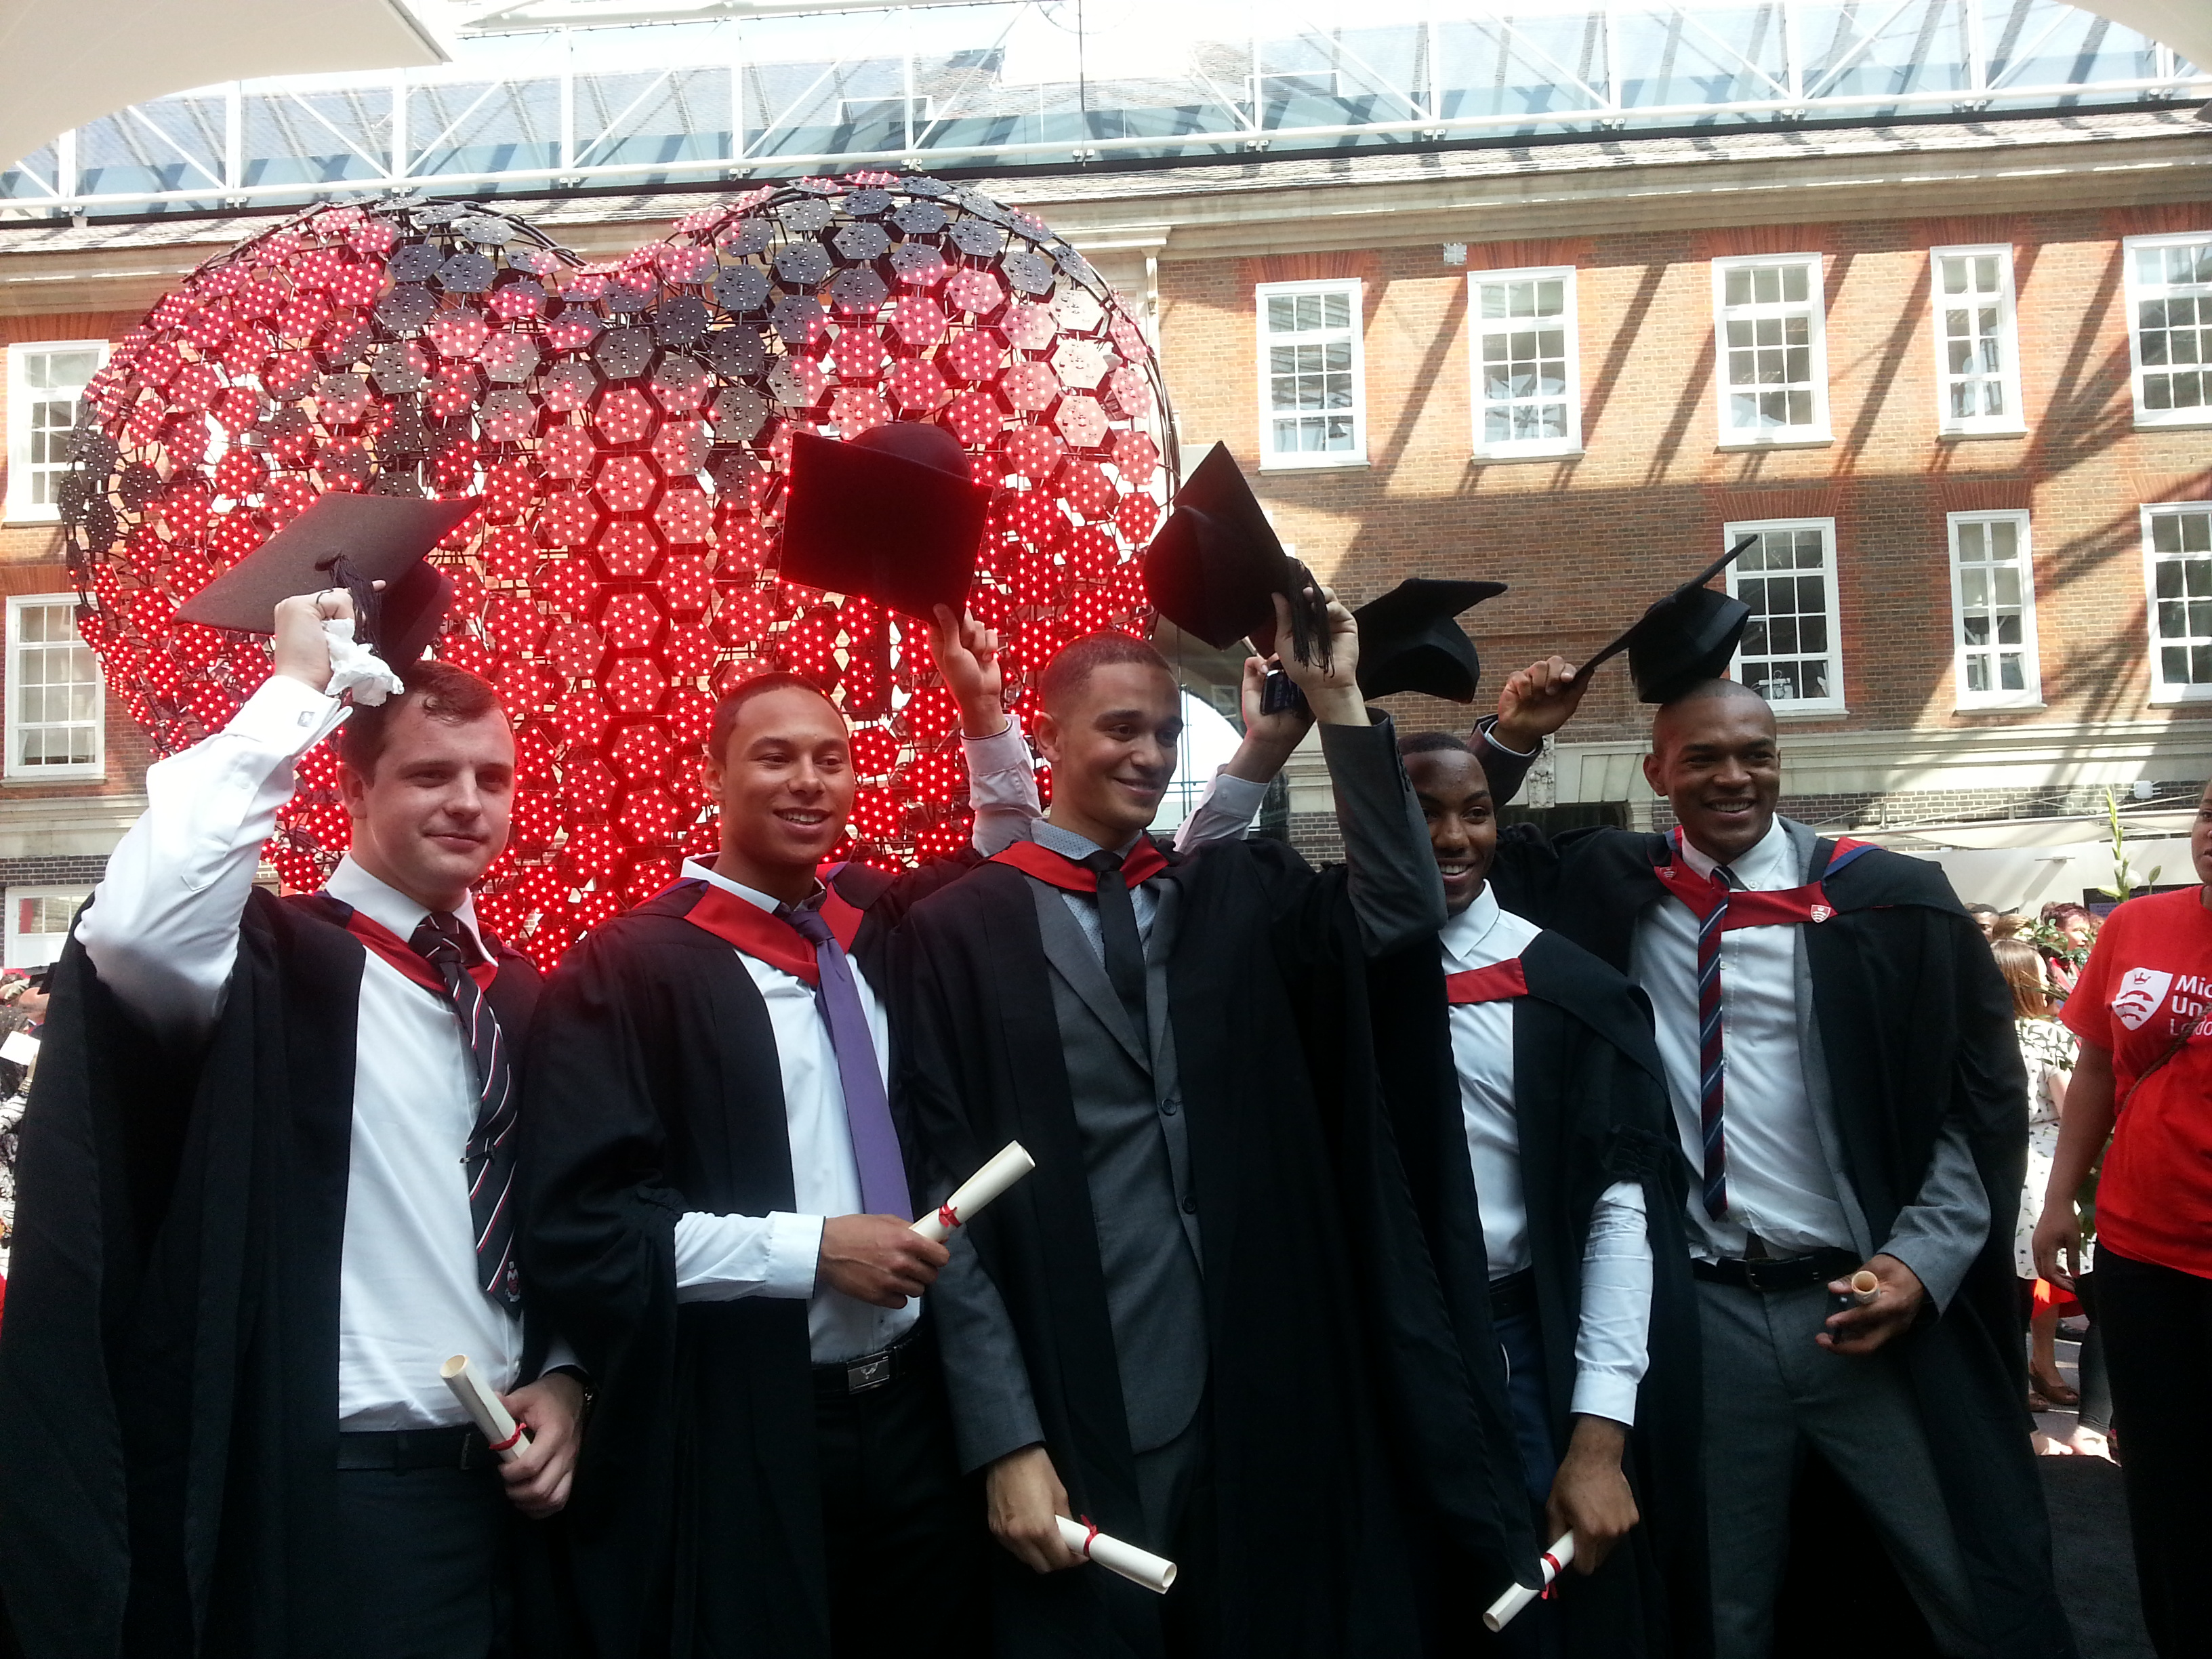 Tyle Lowe with friends at graduation